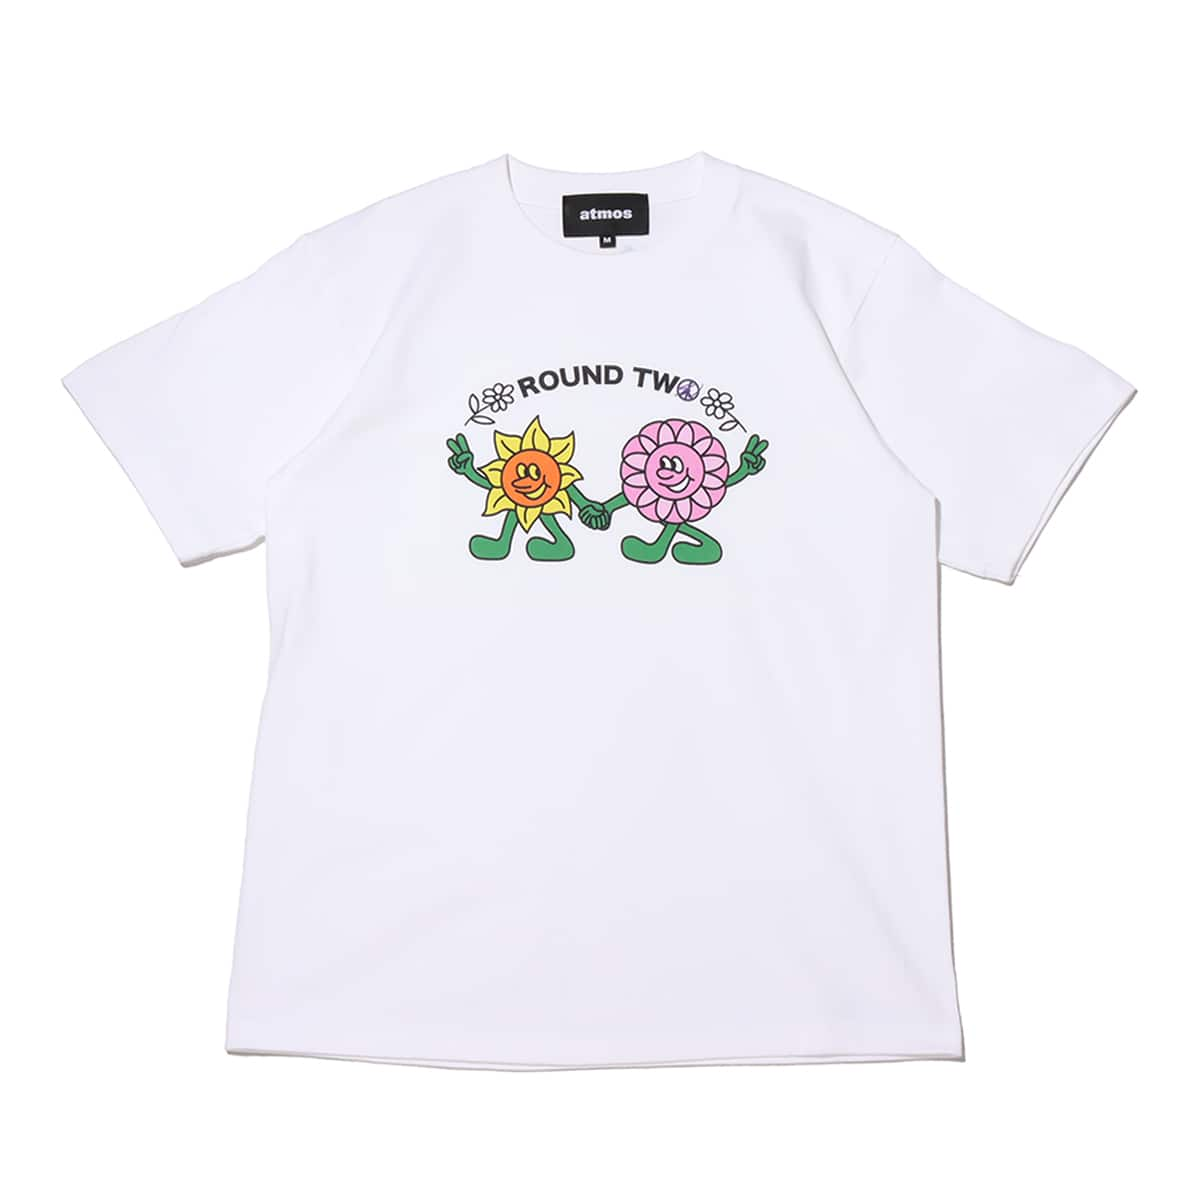 atmos x ROUND TWO WALKING FLOWERS white 21SP-S_photo_large